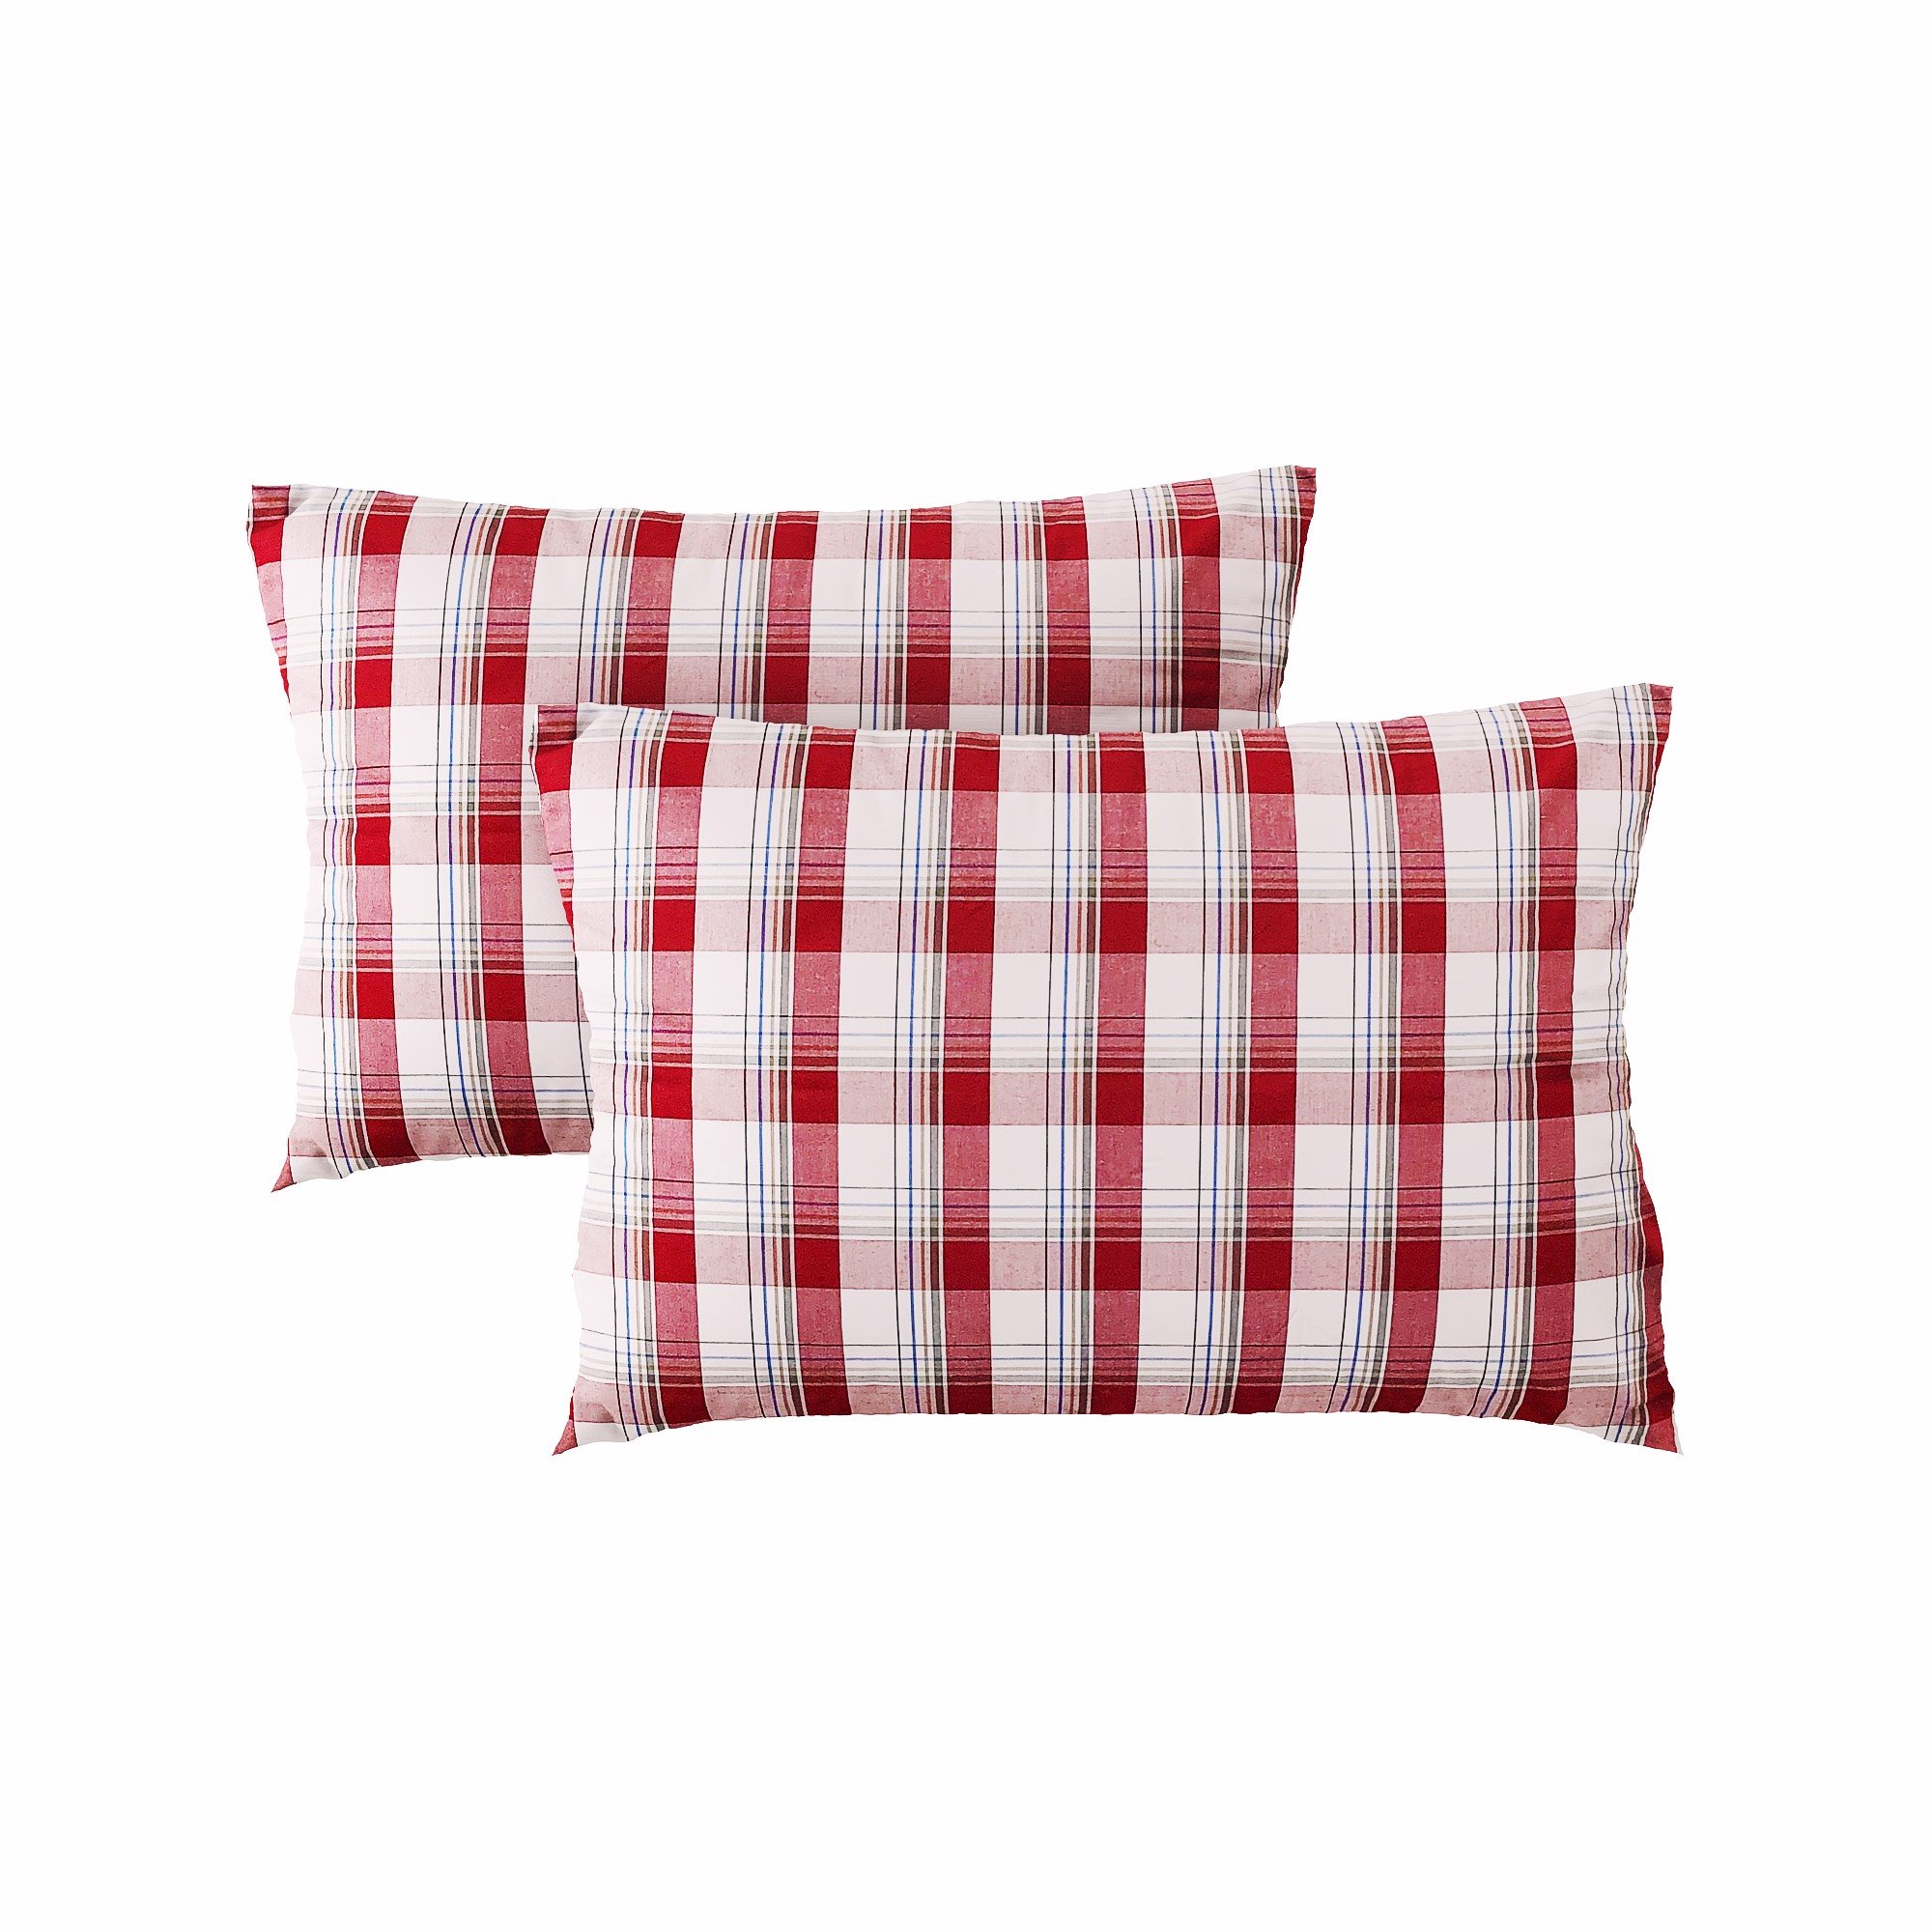 Pillow case 426 Red white grid